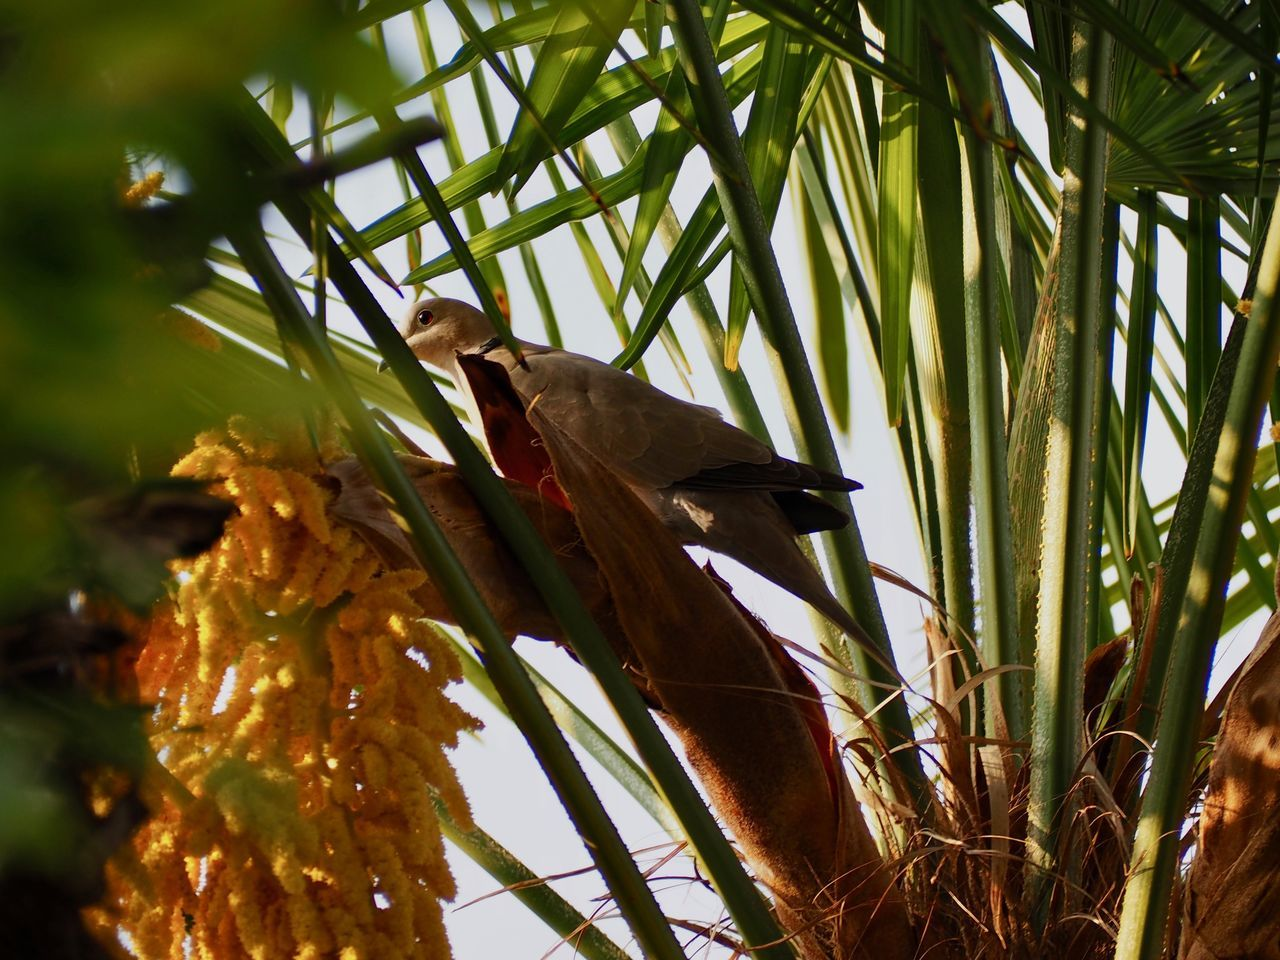 Morning dove perched on a palm tree in spring Animal Themes Animal Wildlife Animals In The Wild Beauty In Nature Bird Branch Close-up Day Dove Green Color Growth Leaf Low Angle View Nature No People One Animal Outdoors Parrot Perching Spring Tree